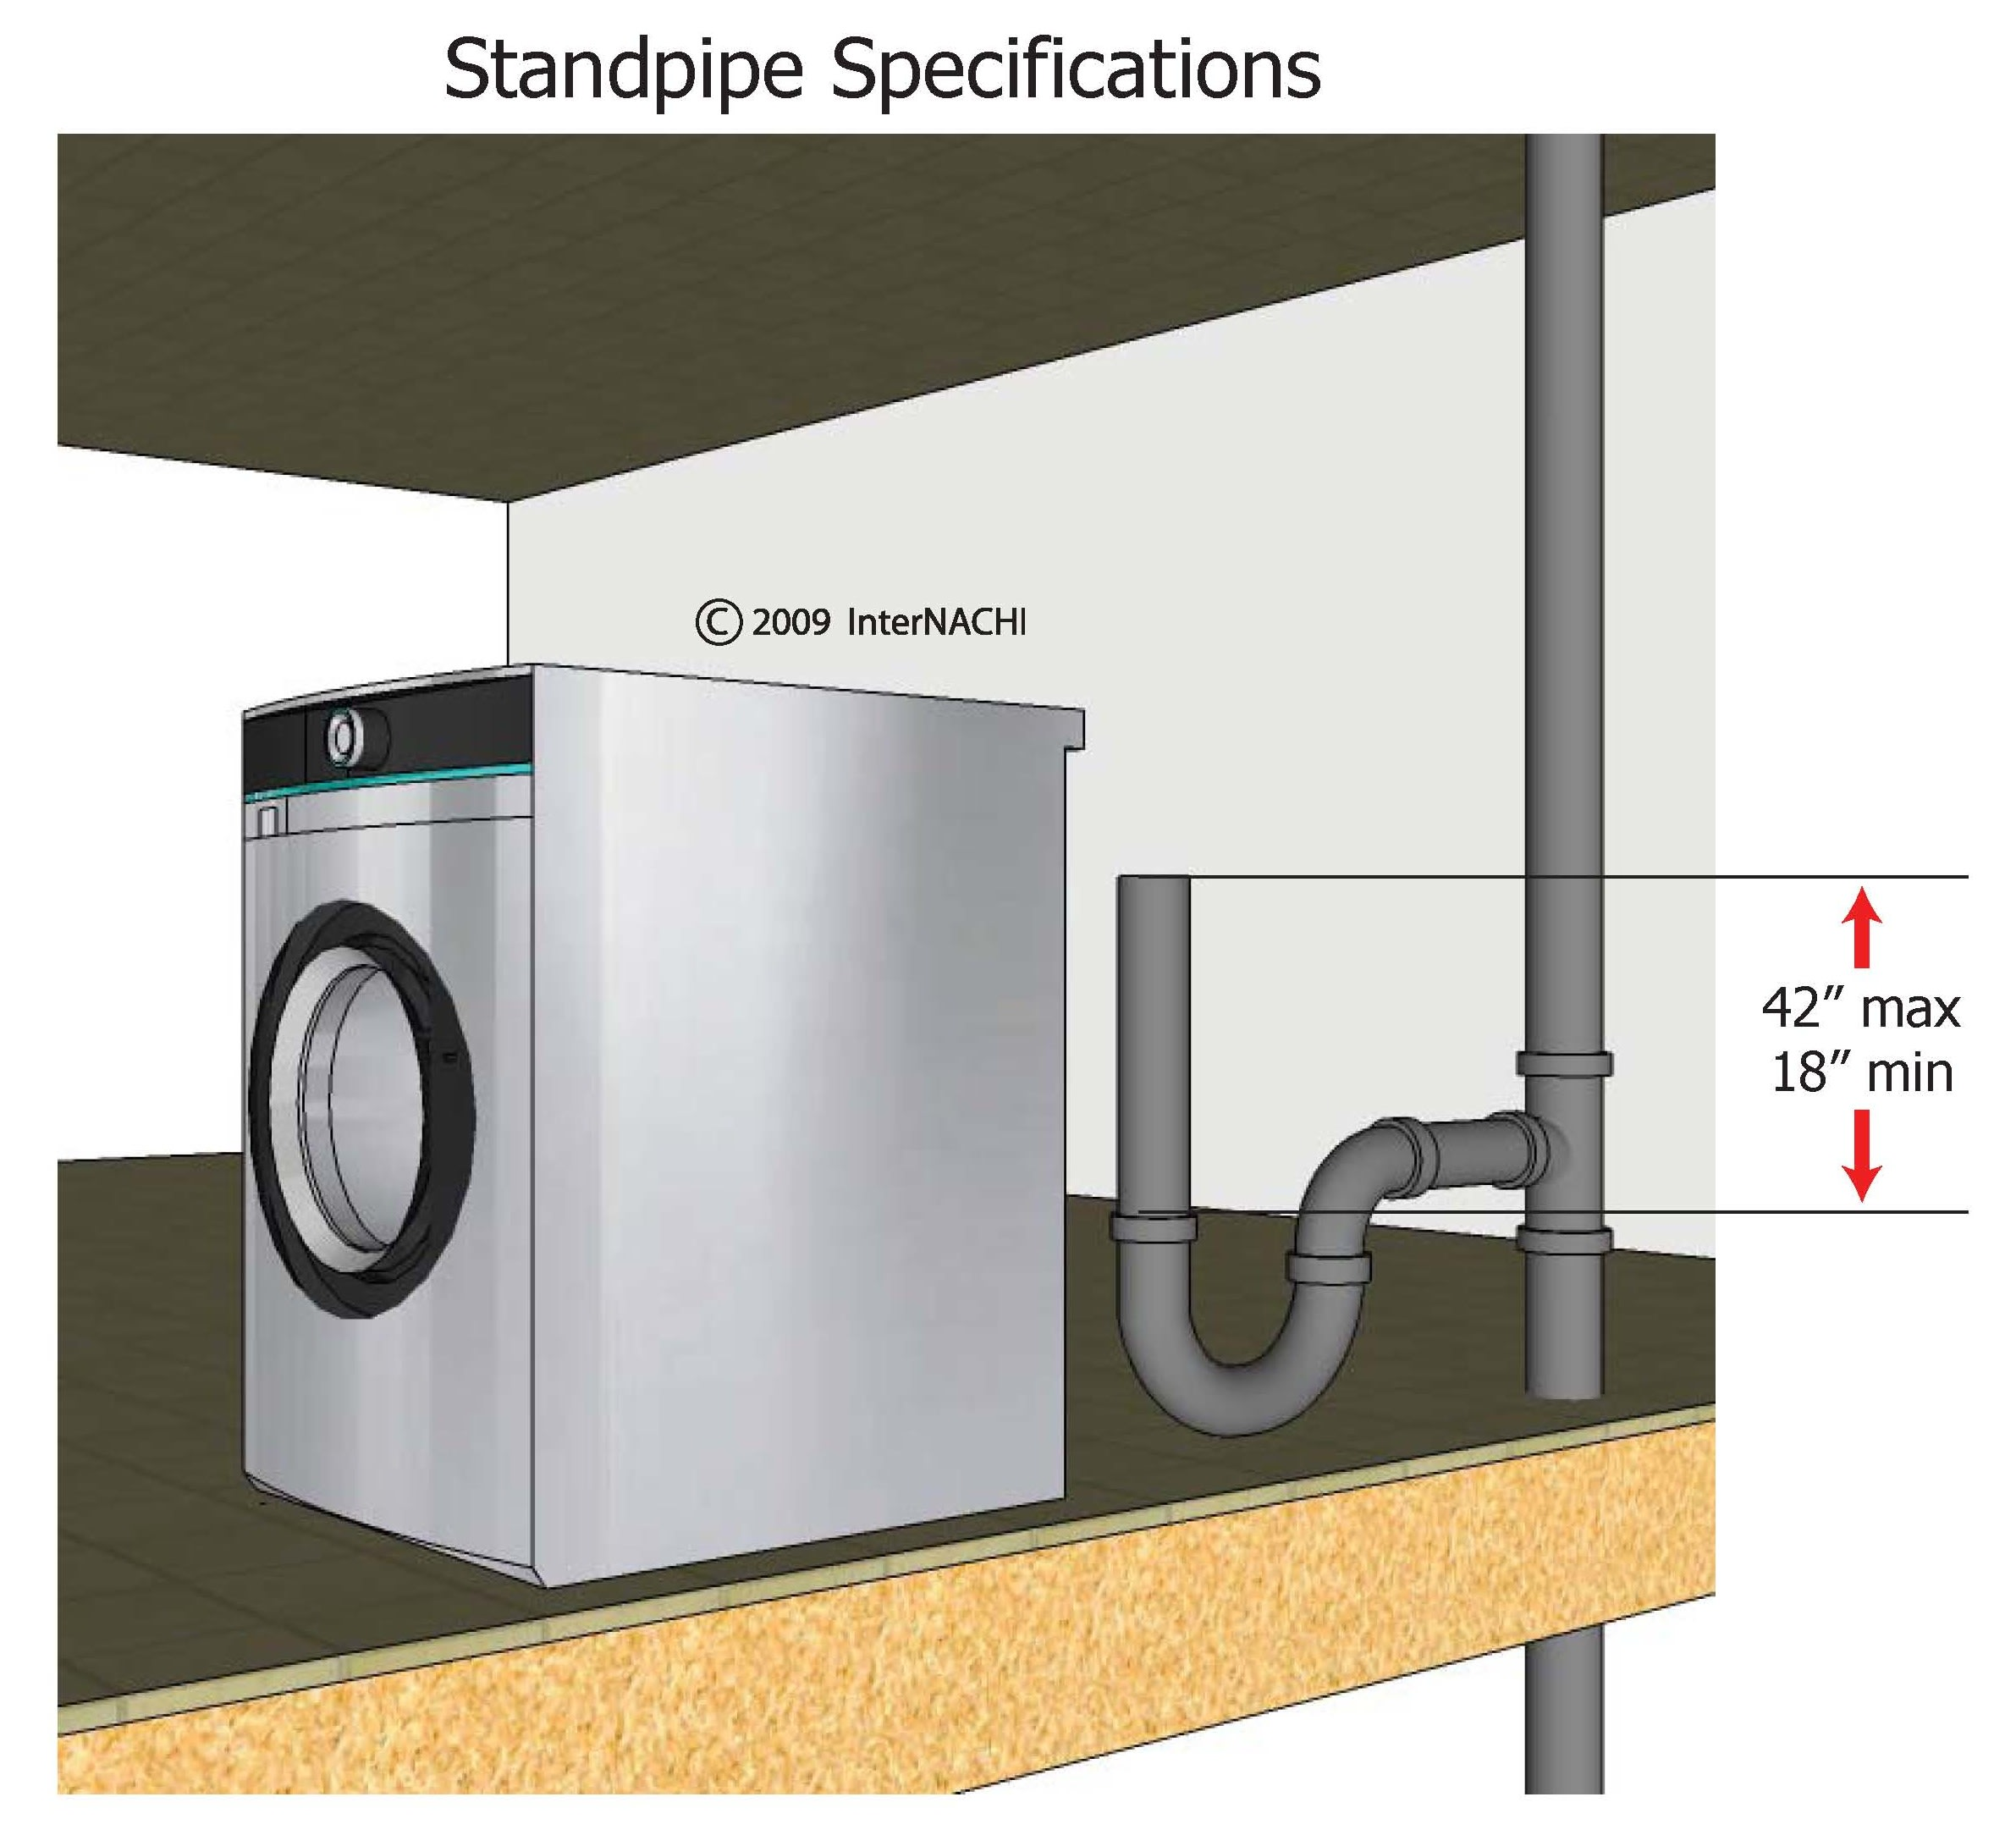 The standpipe for the clothes washer must be trapped. The standpipe height should be at least 18 inches (457 mm) and no more than 42 inches above the trap weir.